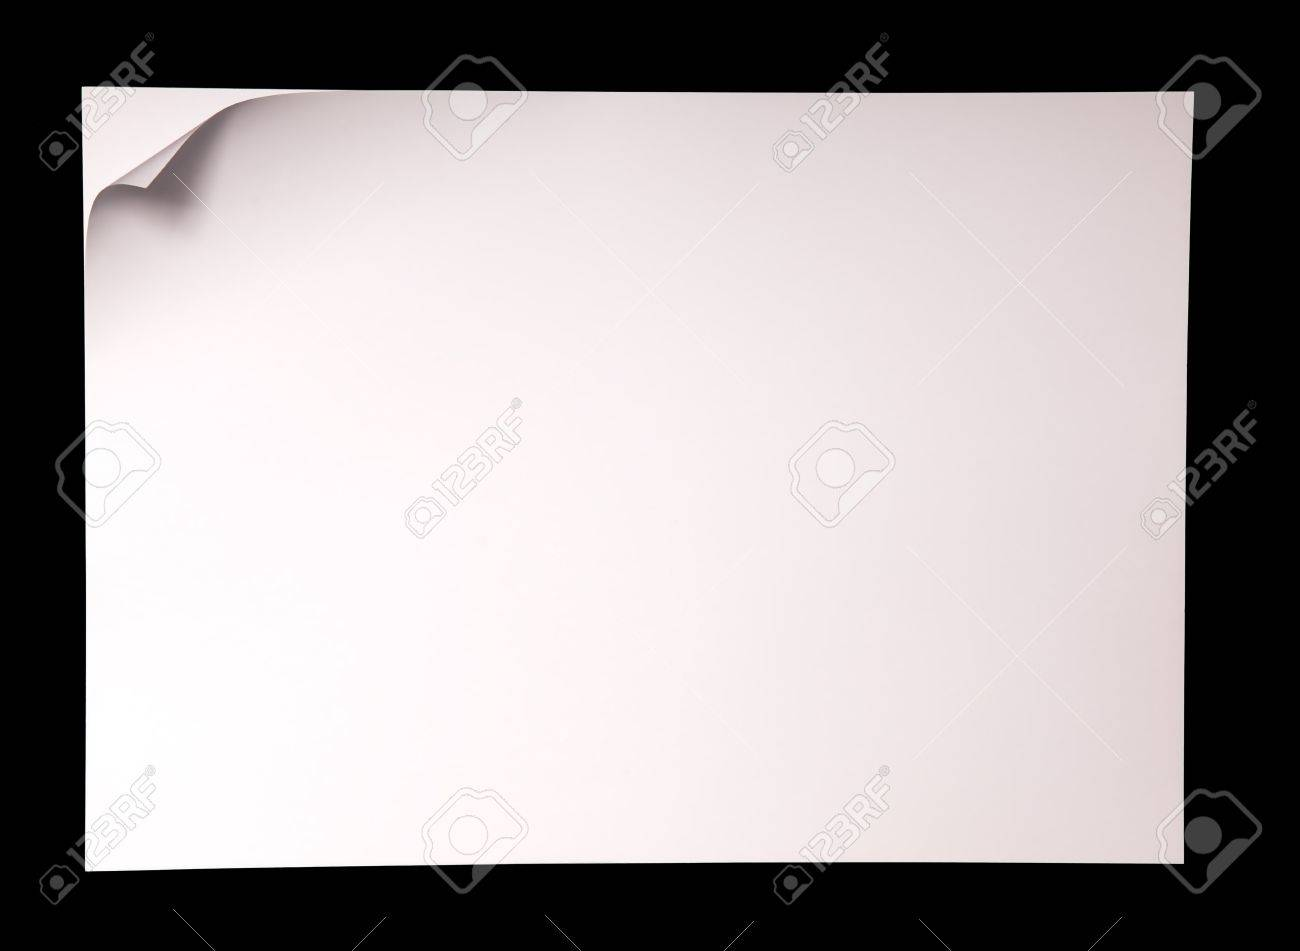 Paper page with curl, copy space for your text. Stock Photo - 7593140